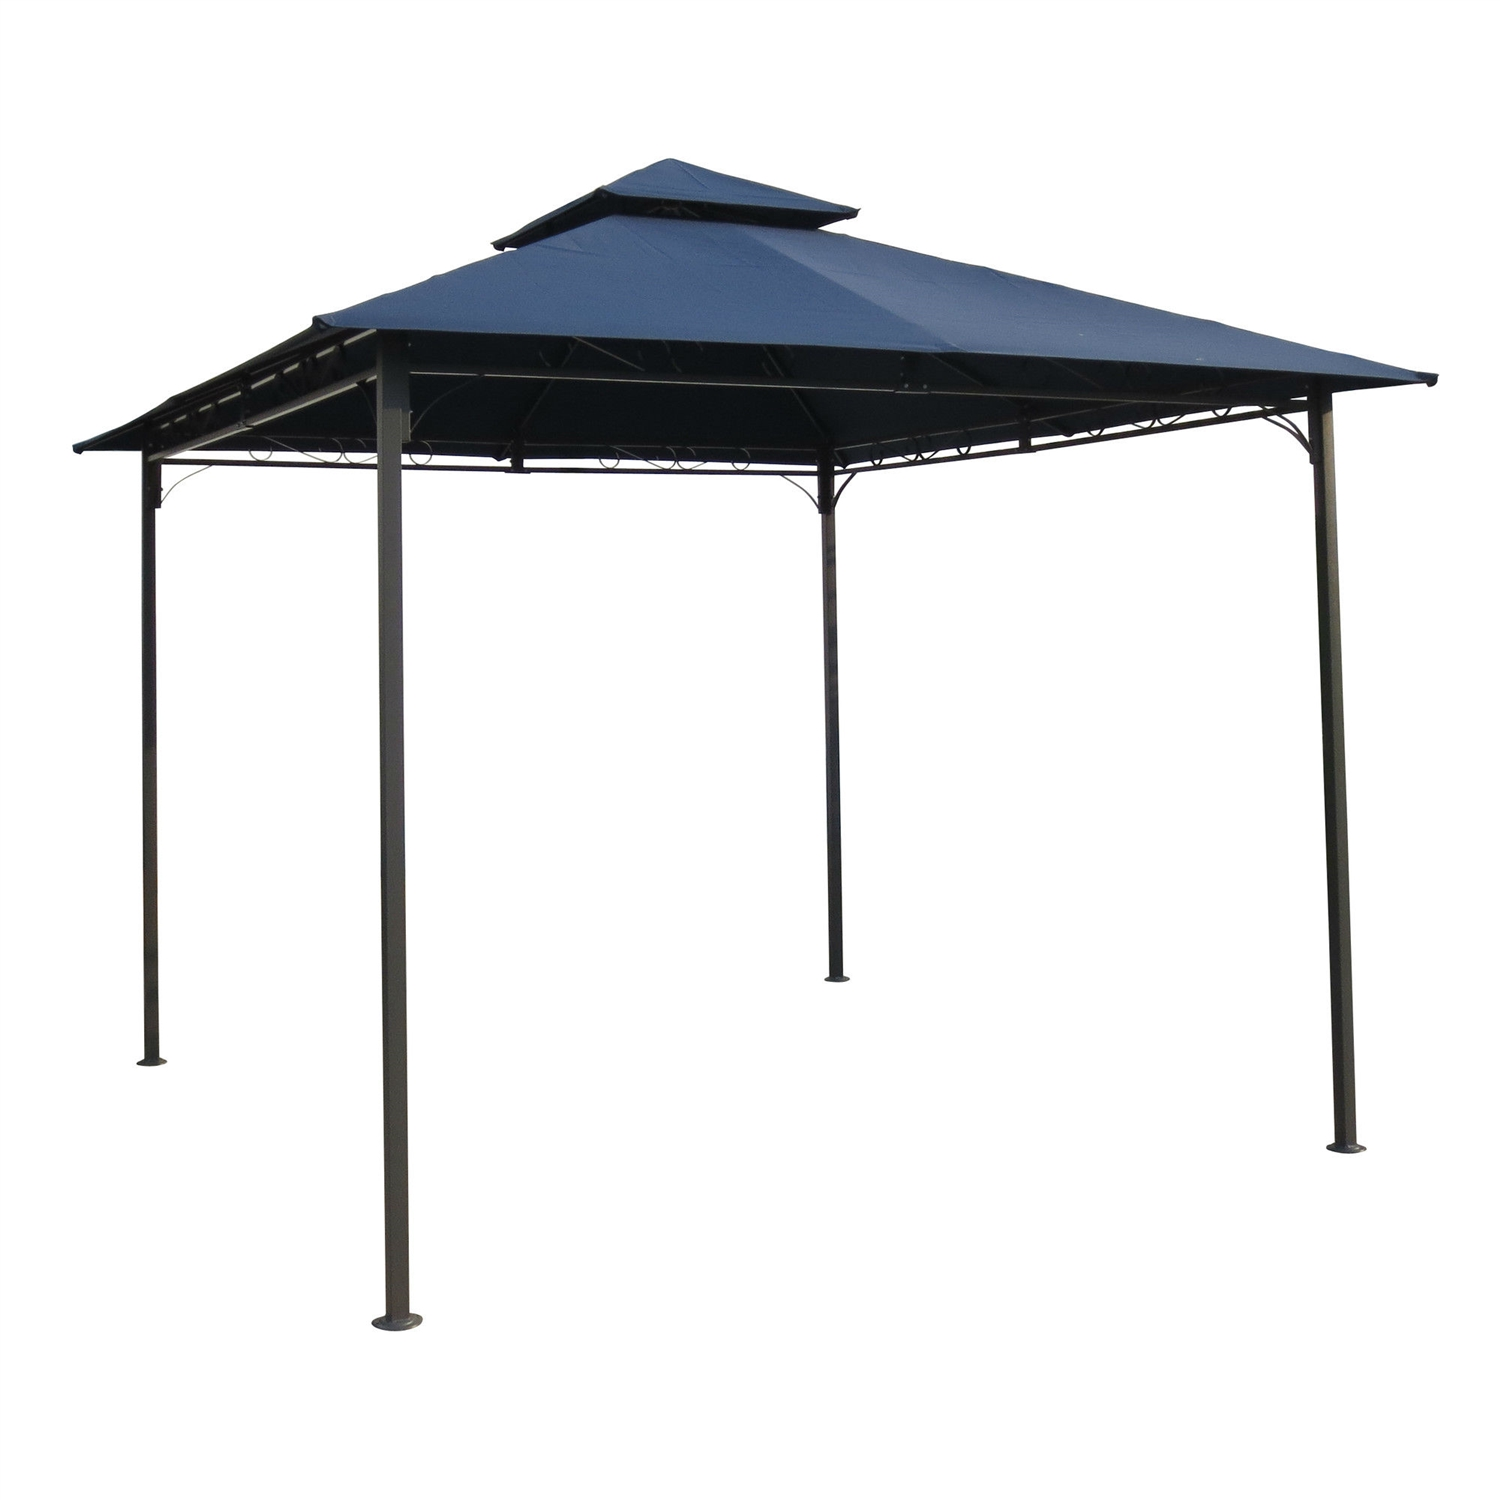 10Ft x 10Ft Outdoor Garden Gazebo with Iron Frame and Navy Blue ...